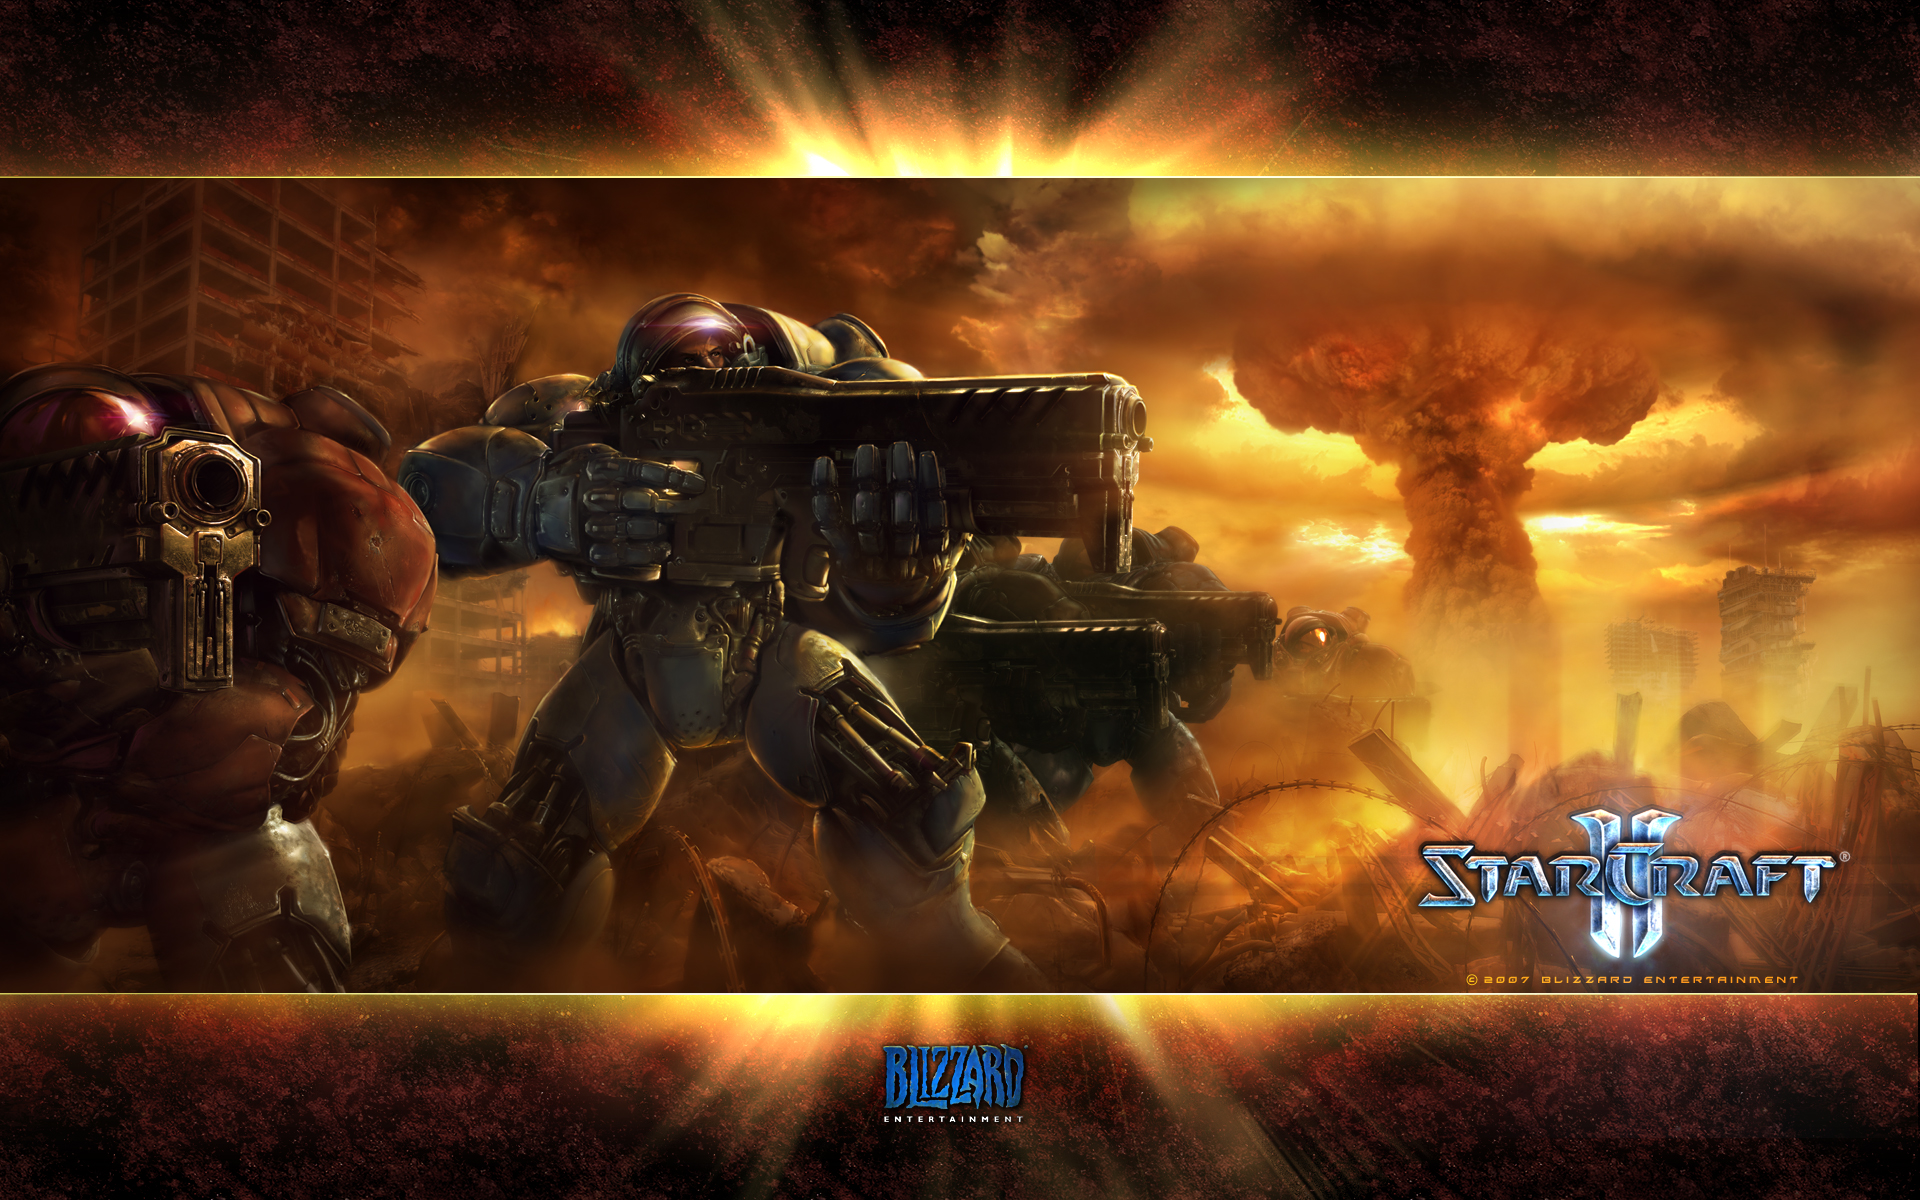 Starcraft 2 Wallpapers 1920×1200